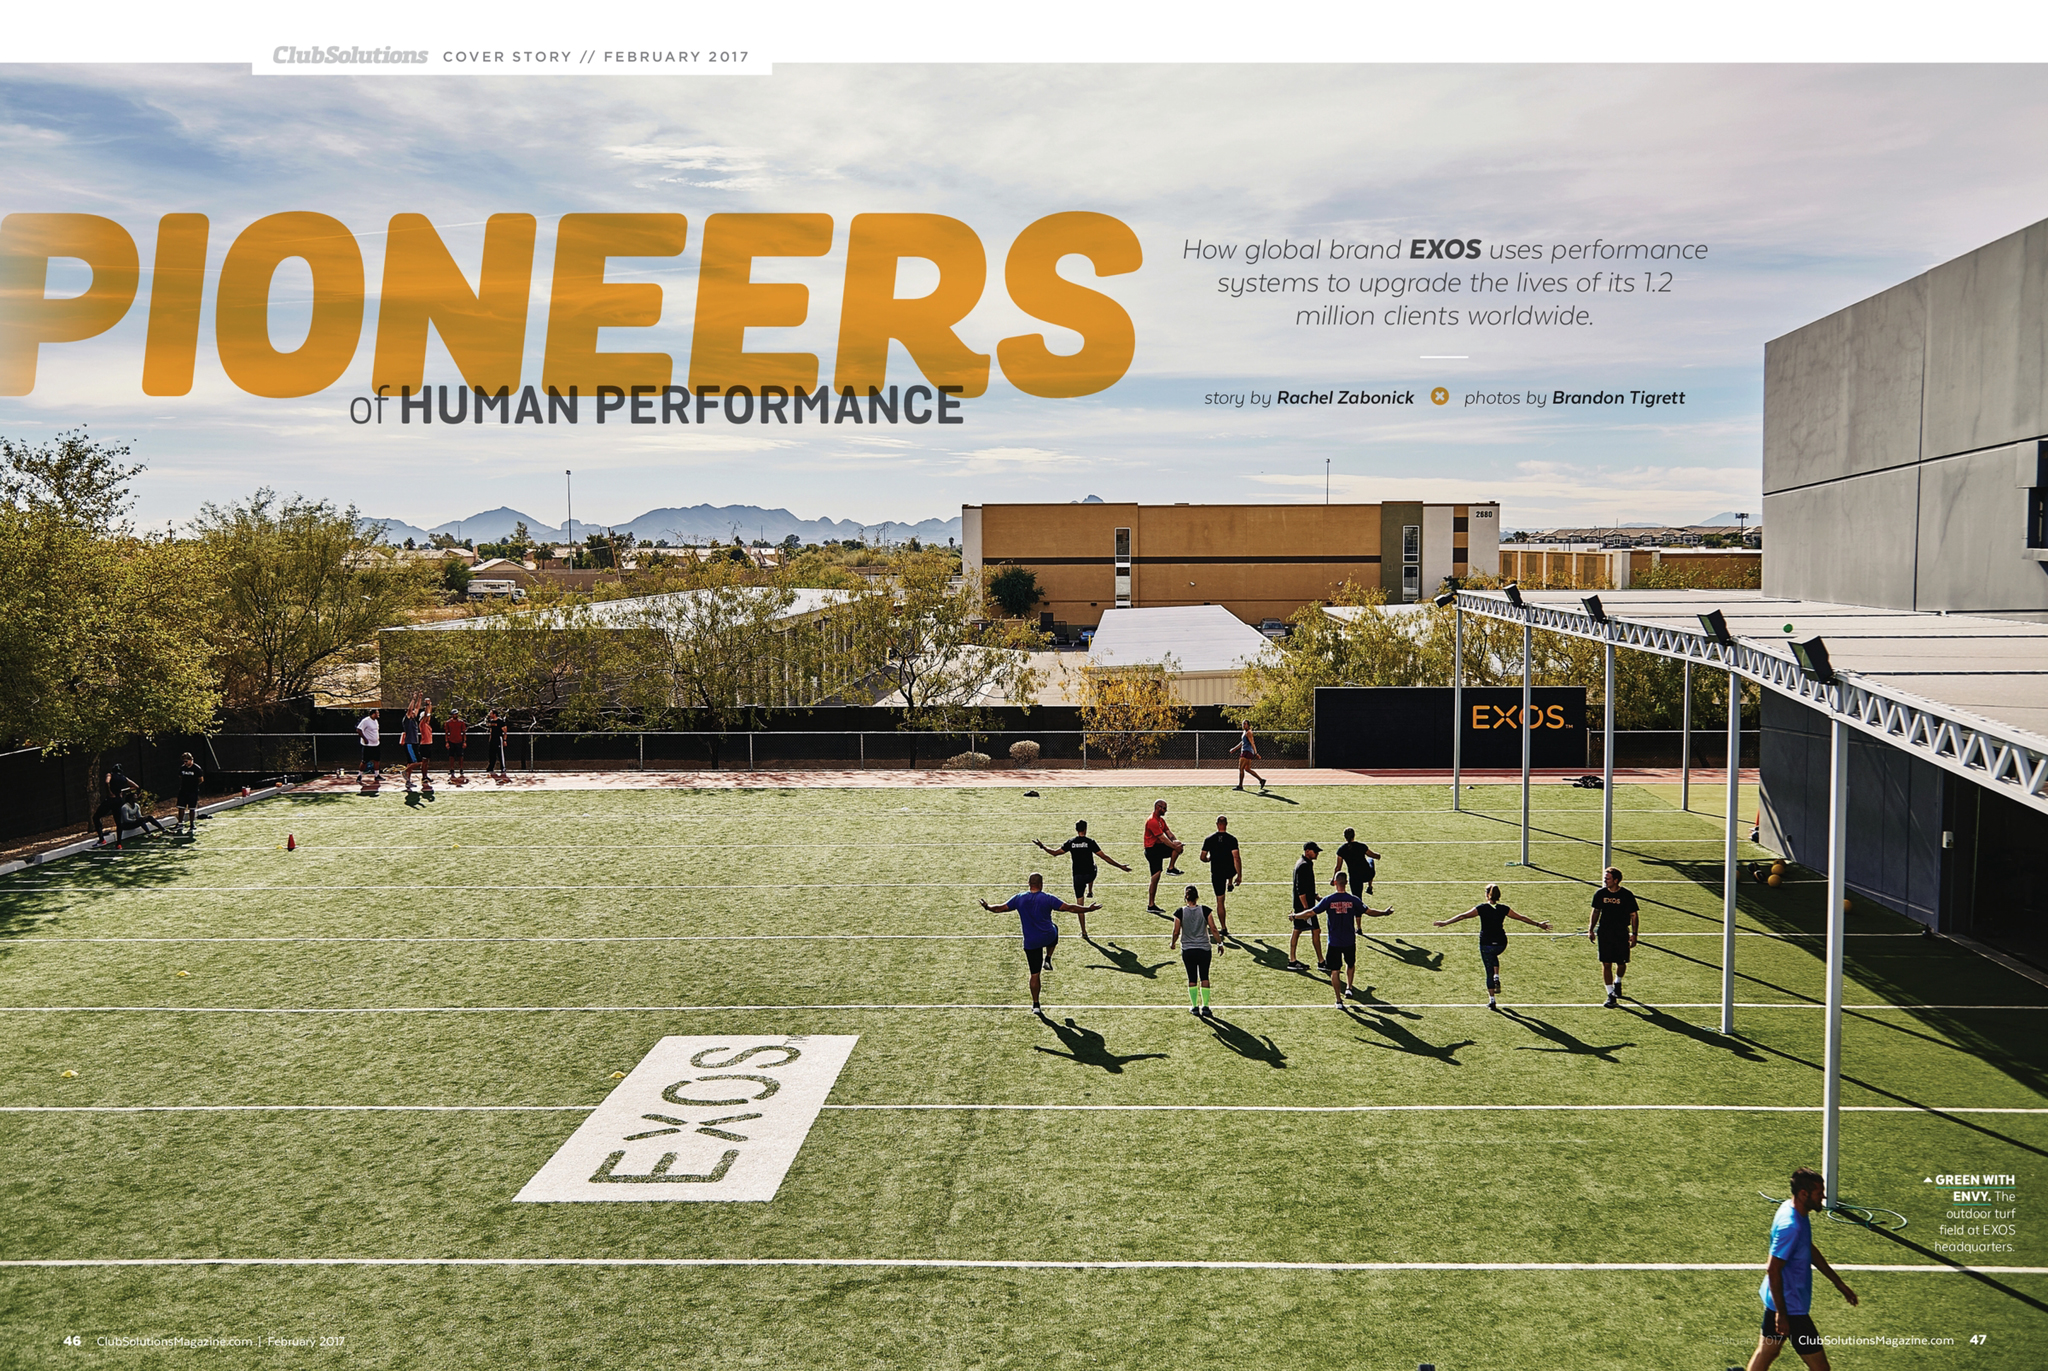 Club Solutions Magazine Feature Story - EXOS